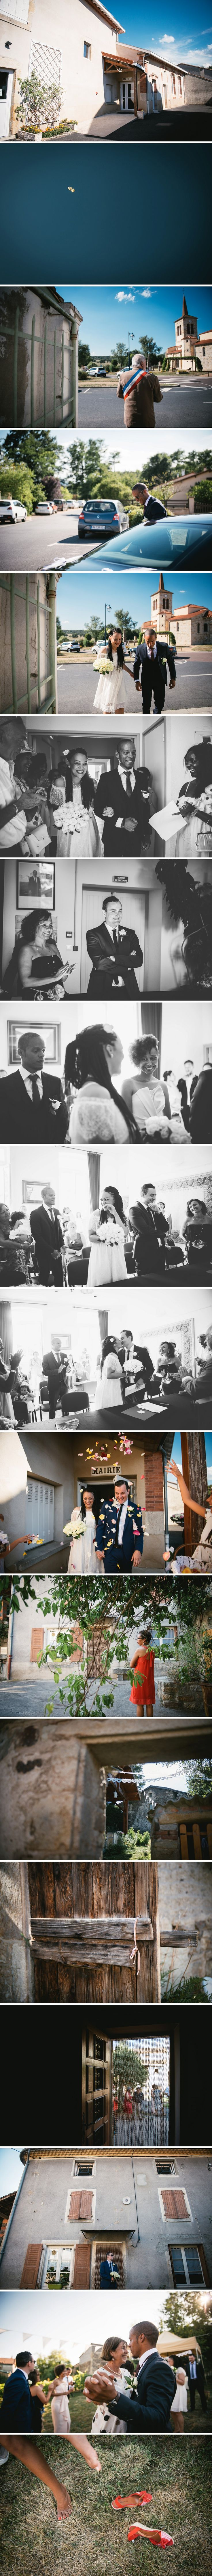 Small wedding ceremony and reception in Central France - Zephyr & Luna photography